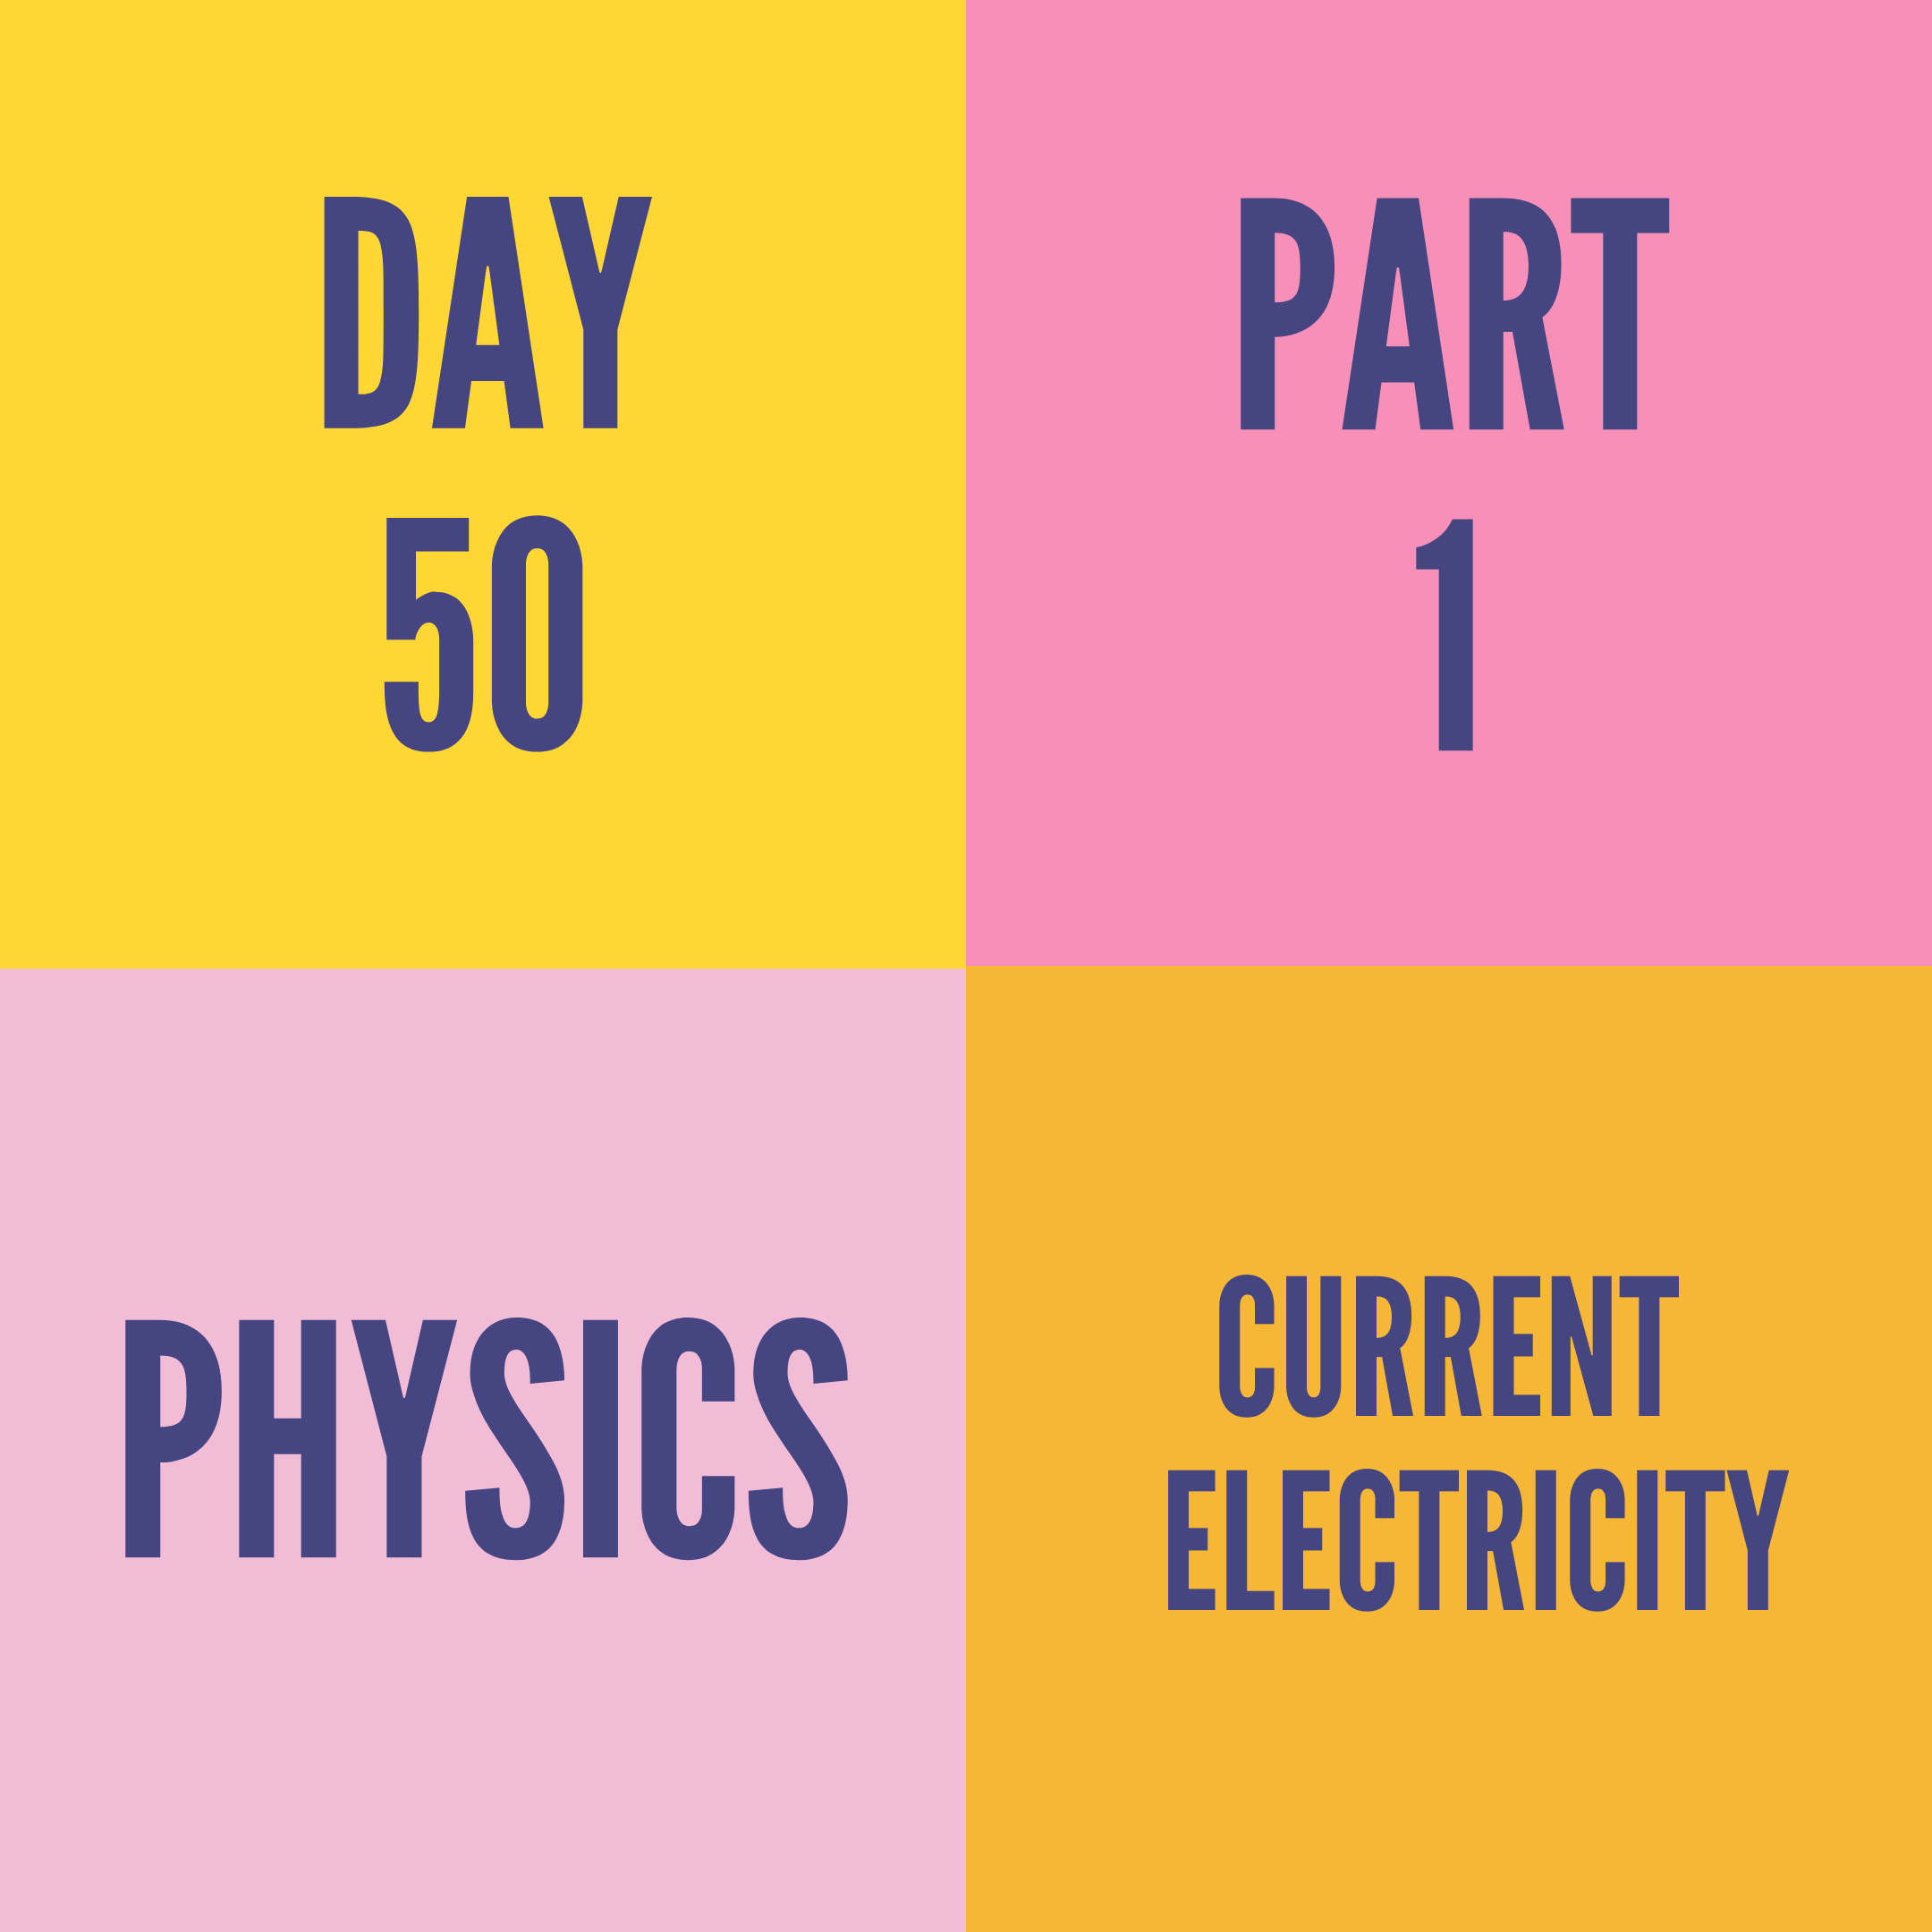 DAY-50 PART-1  CURRENT ELECTRICITY